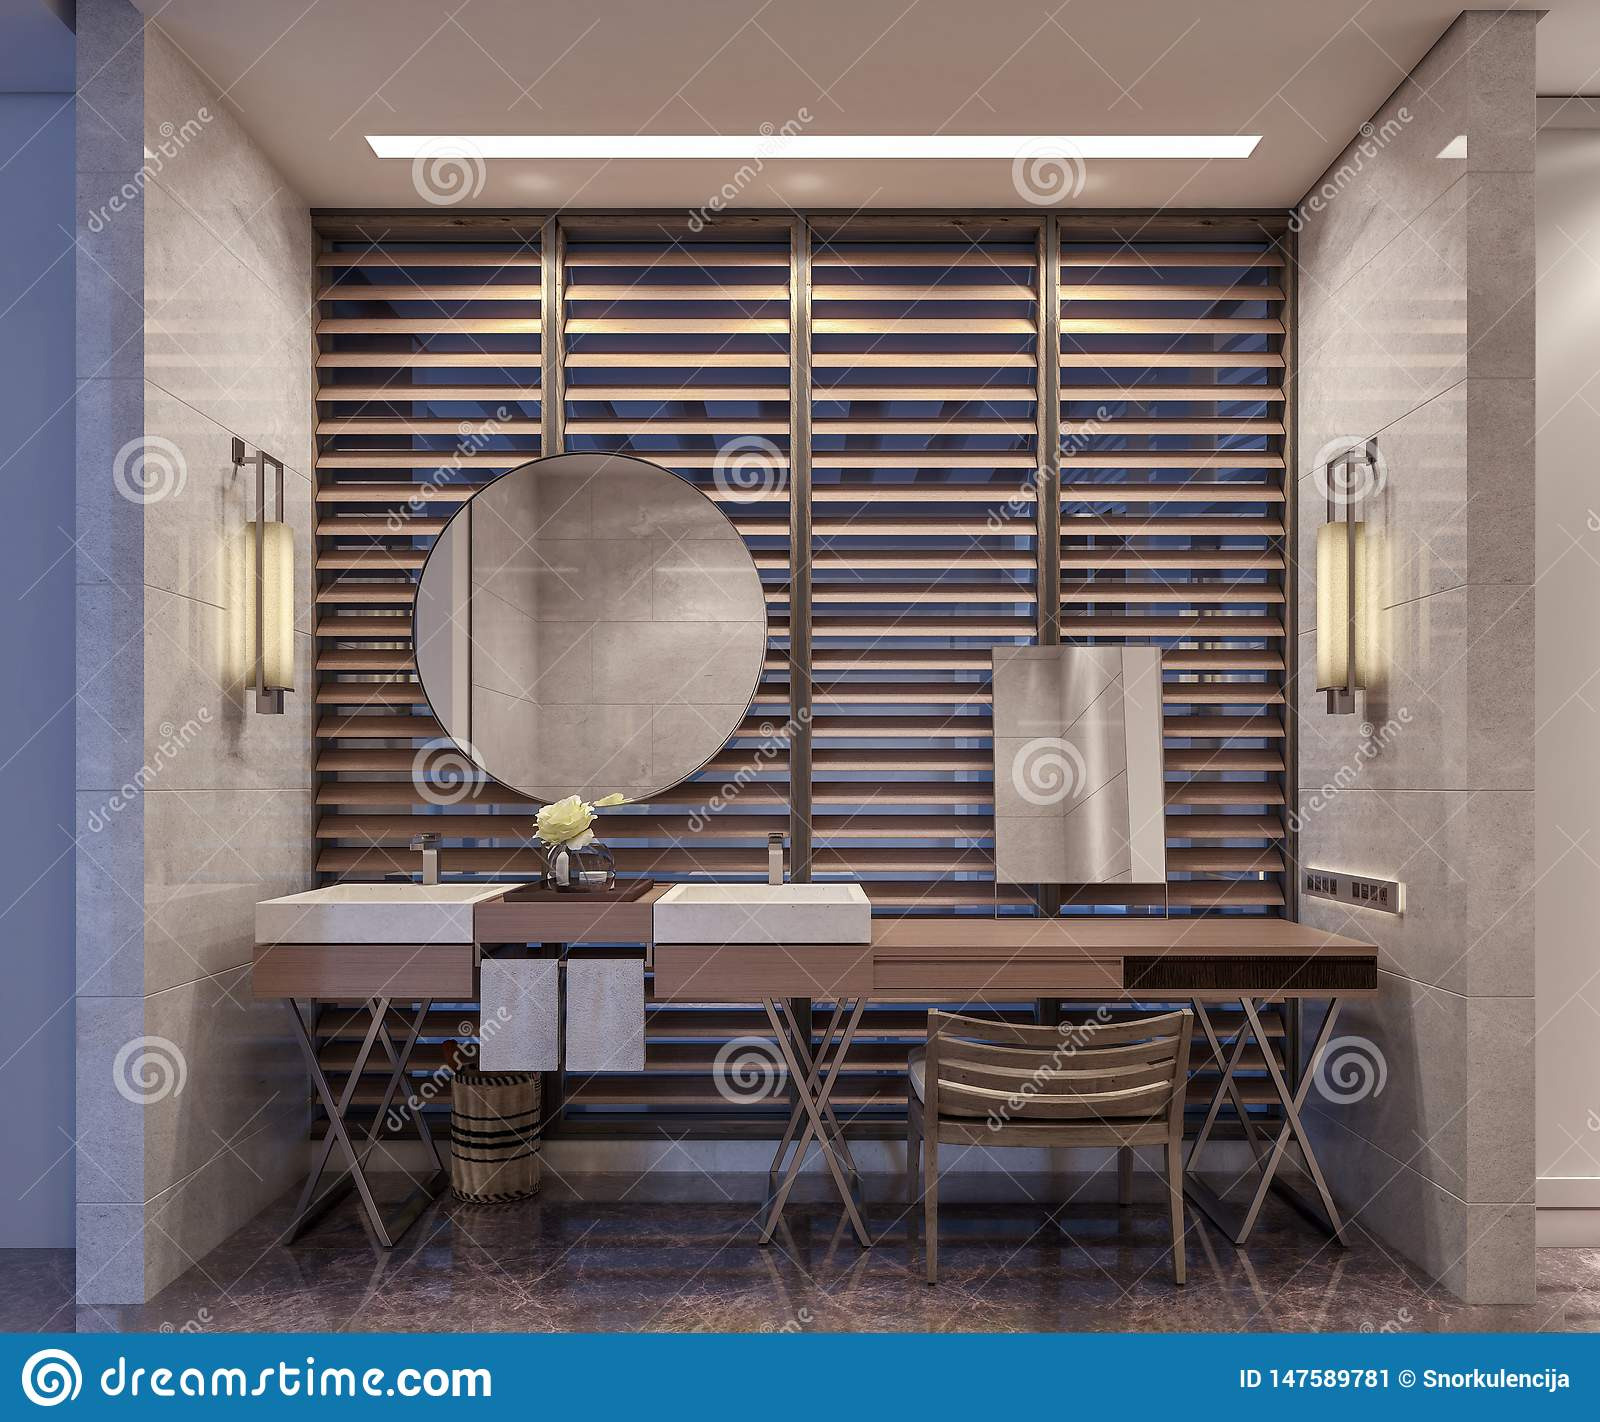 Modern Interior Design Of Hotel Bathroom And Vanity Double Mirrors In Front Of Large Window With Wooden Blinds Stock Image Image Of Luxurious Chrome 147589781